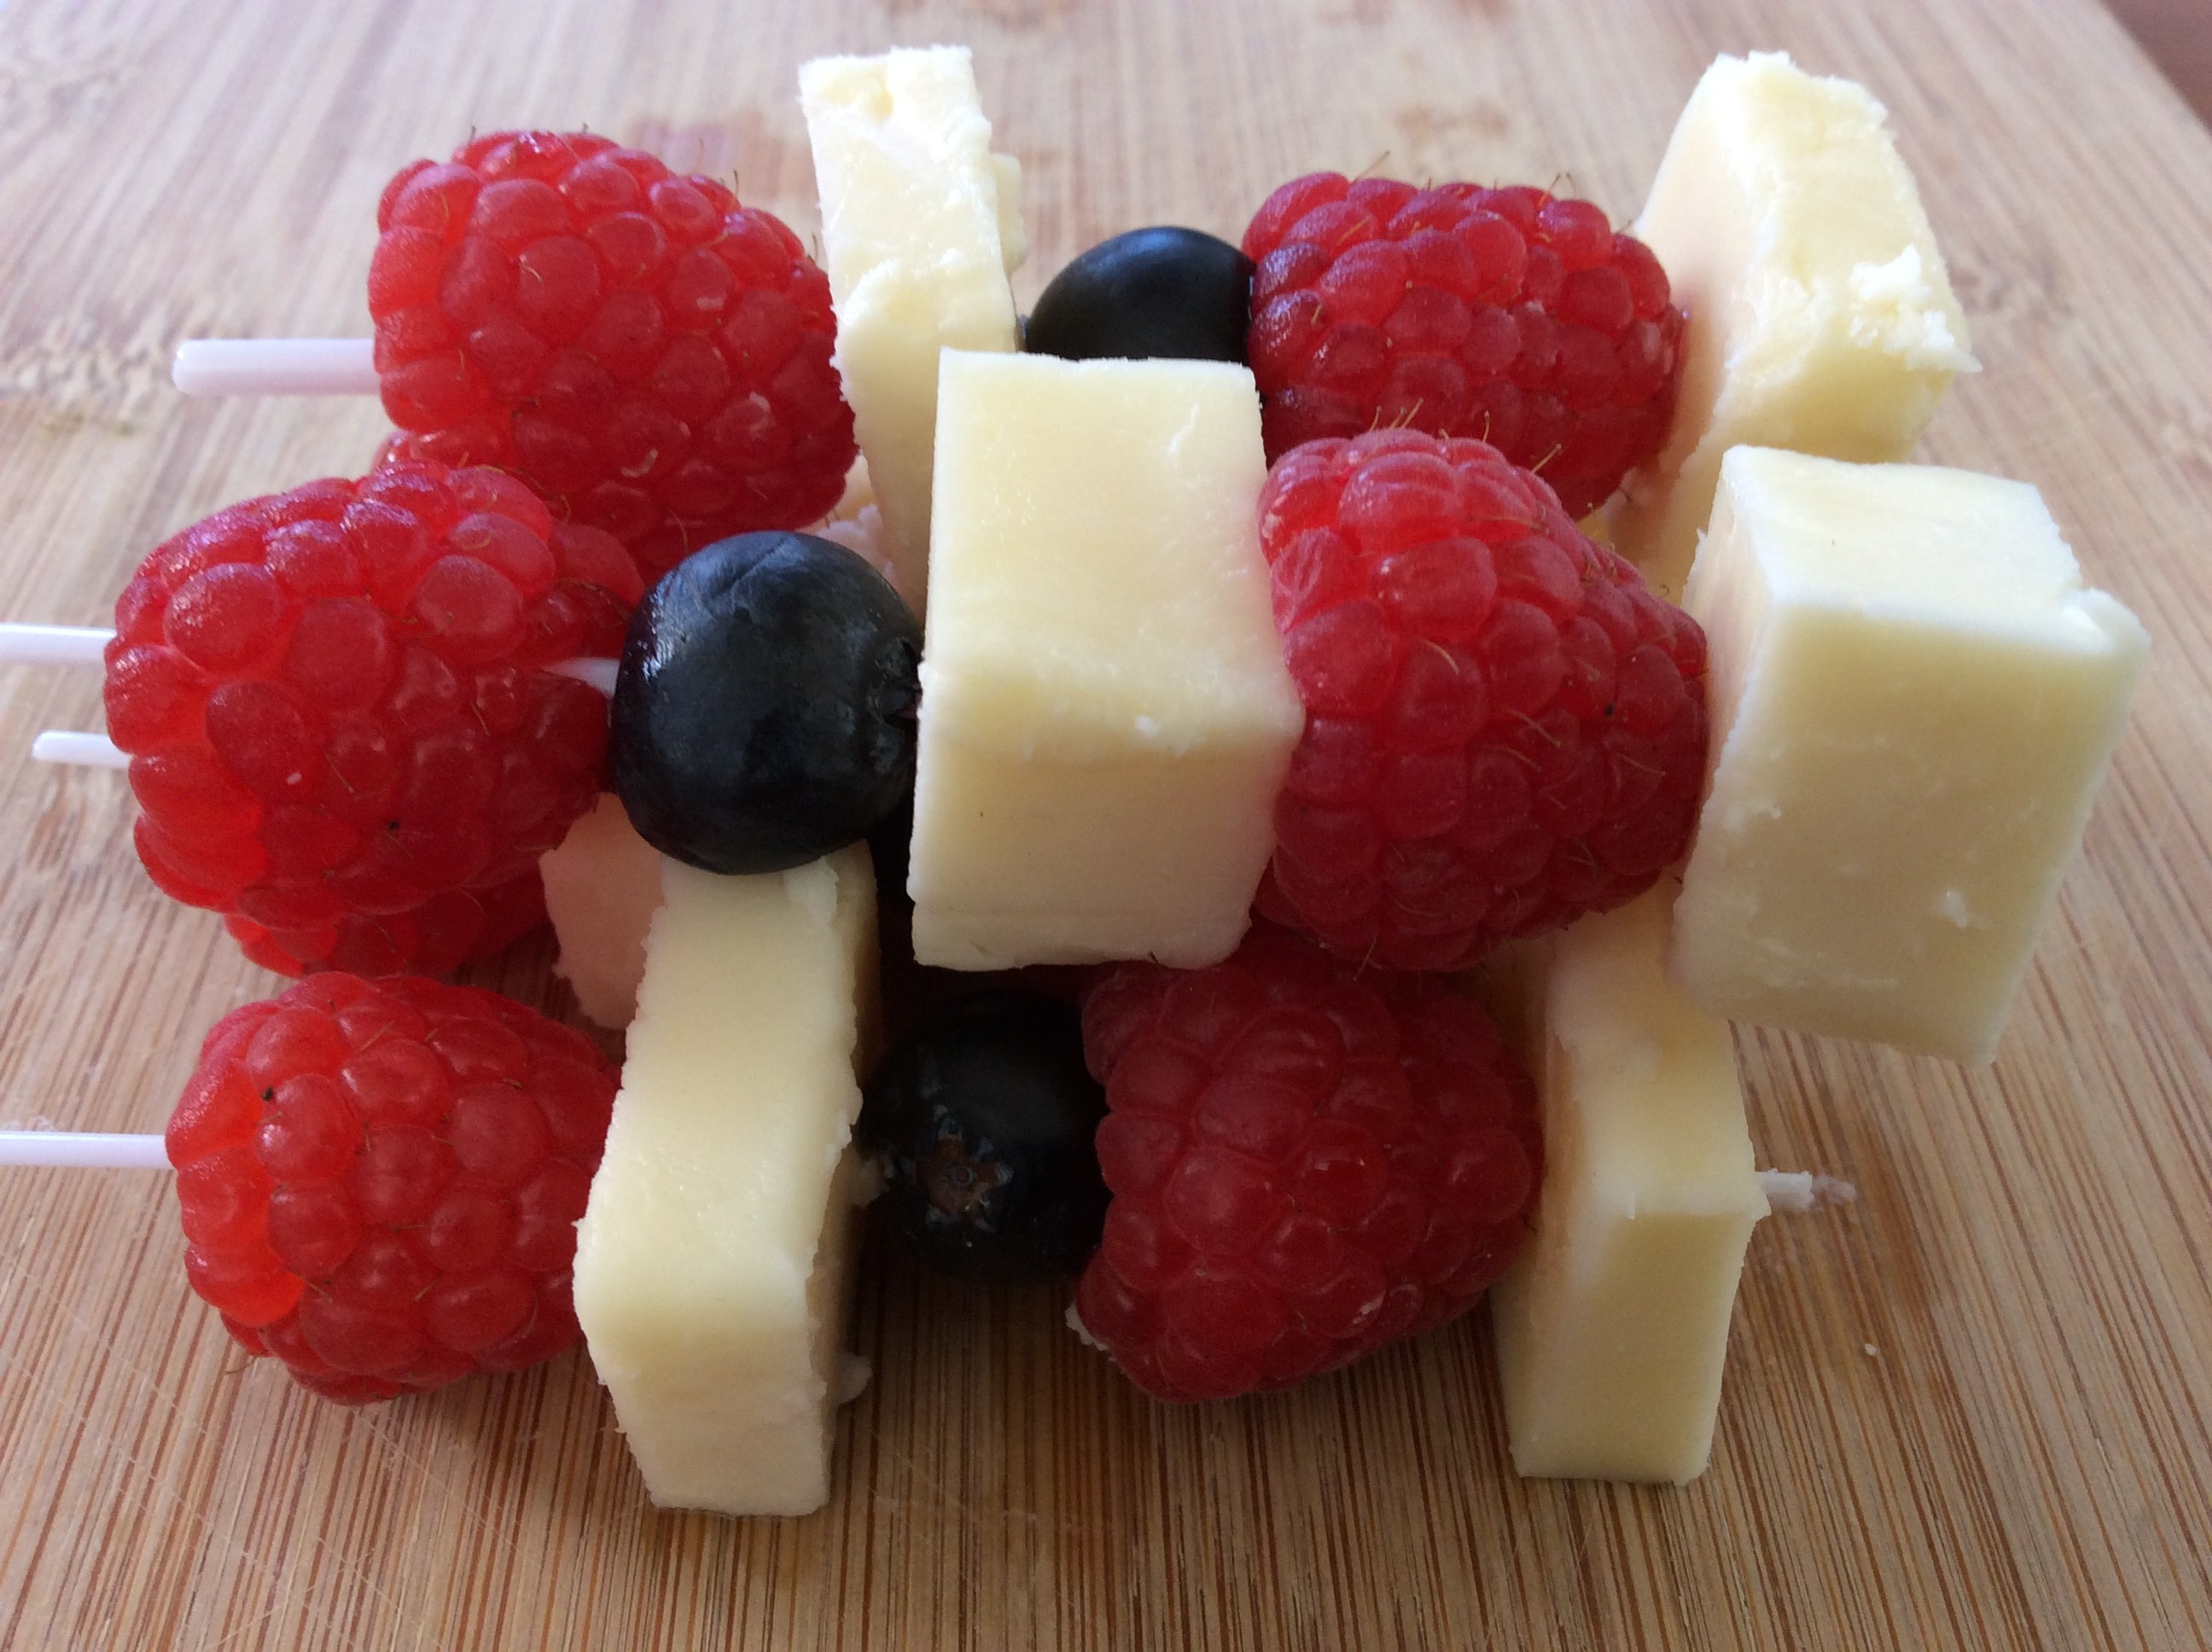 4Th Of July Recipes Red White And Blue Appetizers  Red White and Blue Berry Cheese Bites – Easy 4th of July